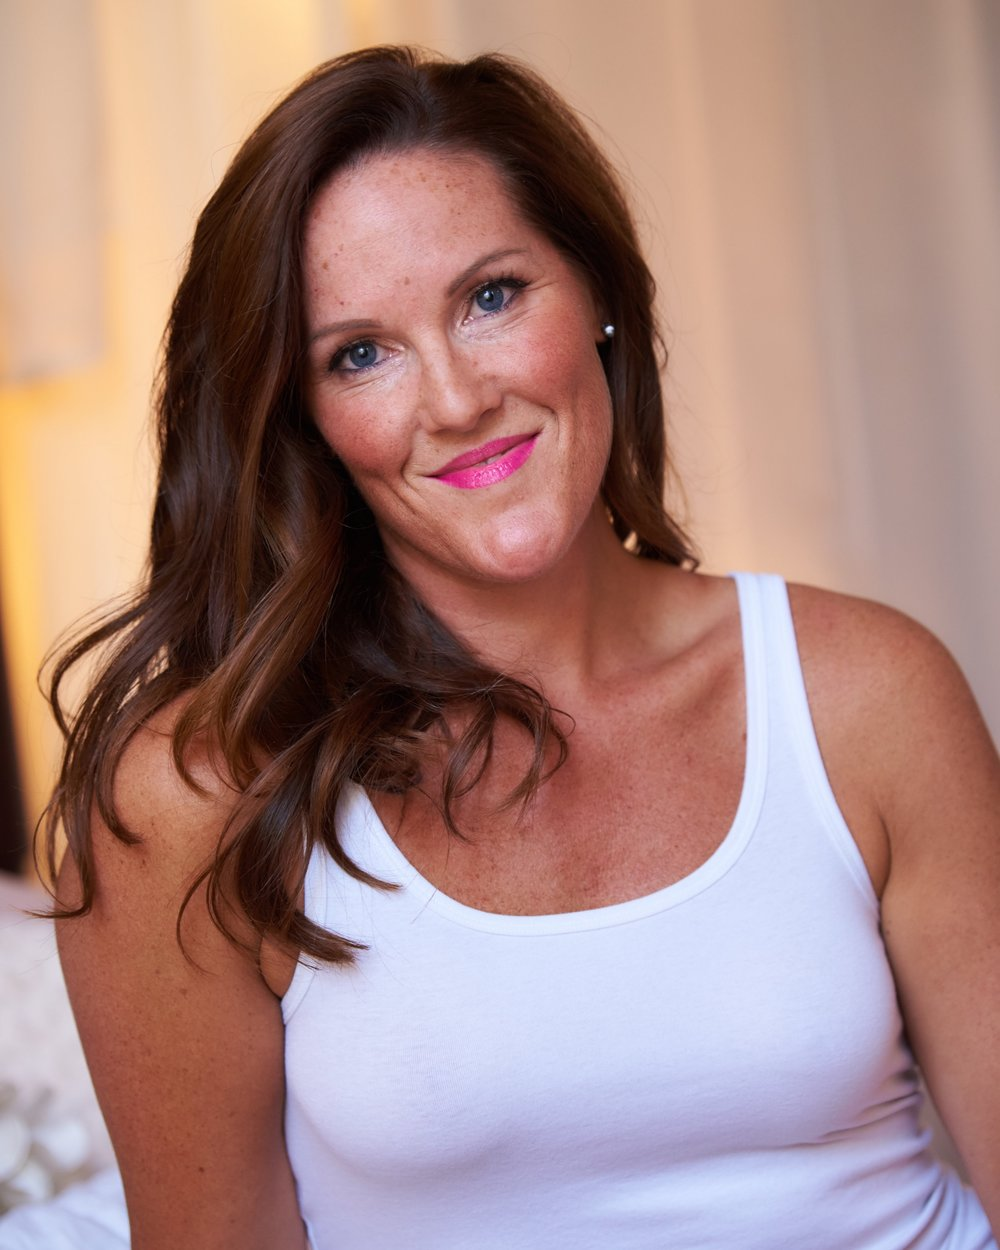 "Heather   ""I have used Aglow Tanning for special events and every time, I LOVE the results. I drive from NH to the studio and it's so worth it. The staff is so professional, makes you feel very comfortable, and does an amazing job every time! I love that my tan looks so natural and isn't streaky. I don't end up with orange hands and feet, but instead a gorgeous glow! In the winter when I use Aglow, people are always complimenting my tan and asking if I've been on vacation. Such a GREAT spot and a must try!"" We are so honored to be your go-to spray tan studio, Heather!"